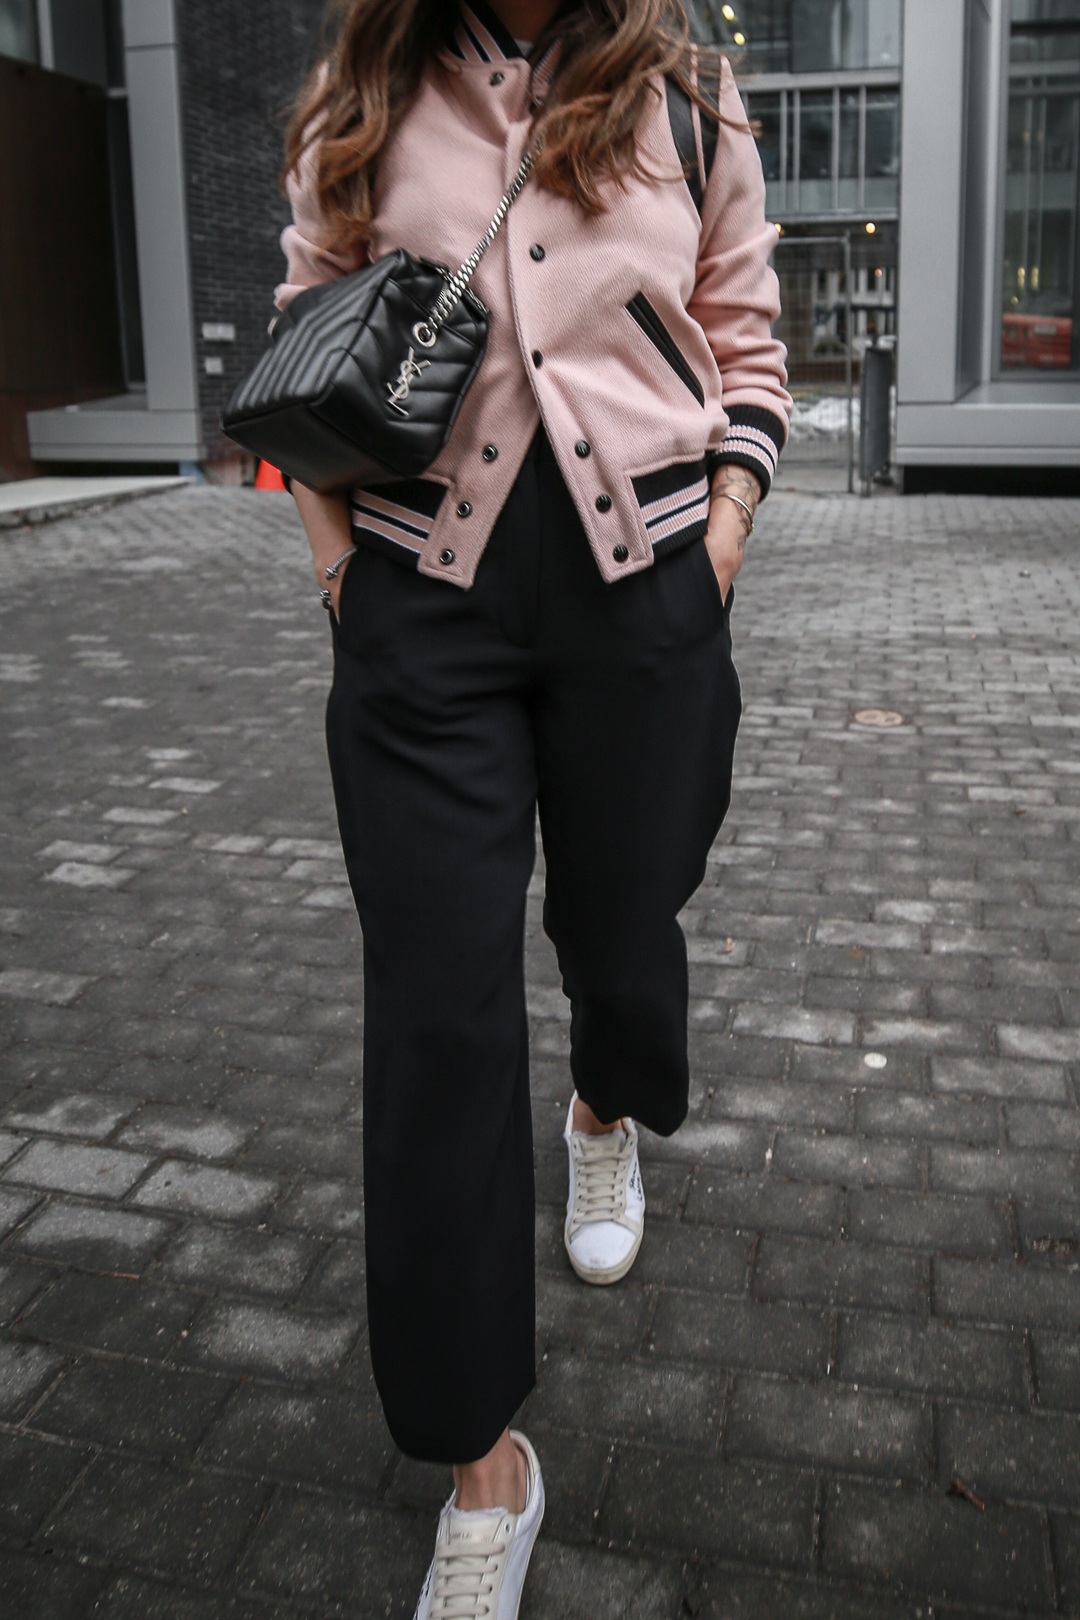 Nathalie Martin wearing Saint Laurent pink Teddy Jacket, YSL Lou Lou small bowling bag, white canvas sneakers, Aritzia Jallade Pant, street style, woahstyle.com_4092-2.jpg